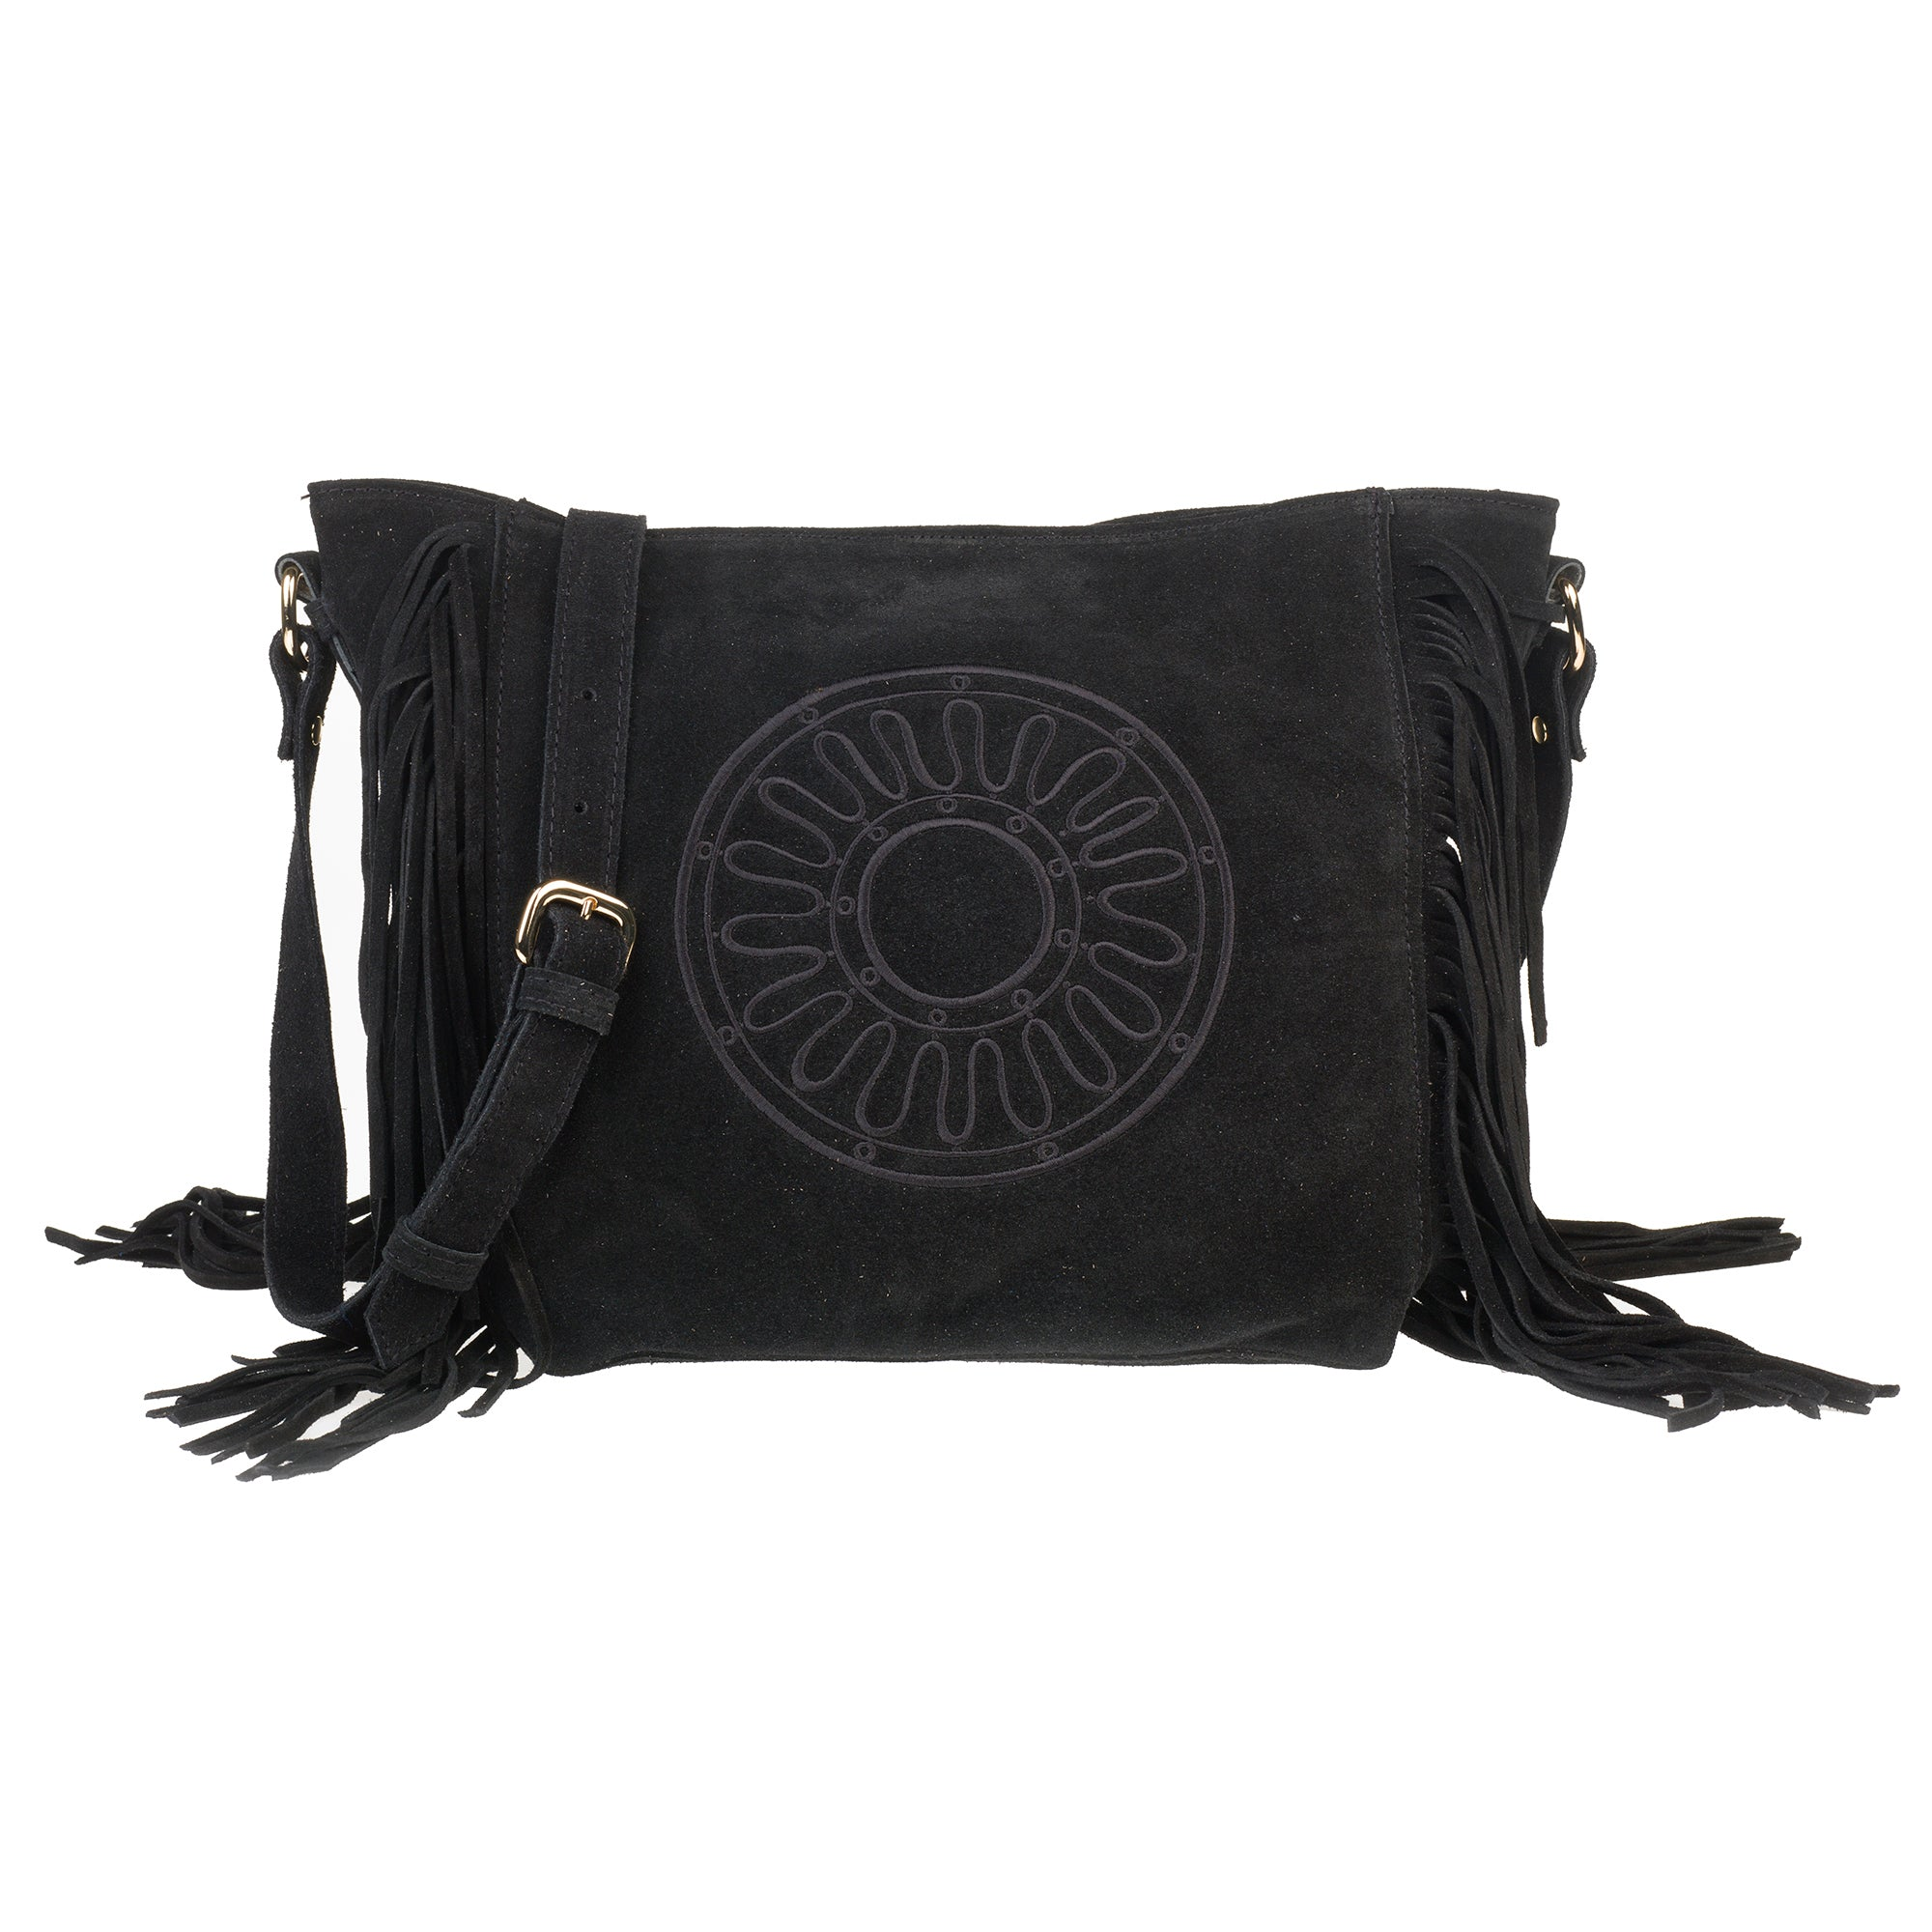 Amalia Cross Body Bag